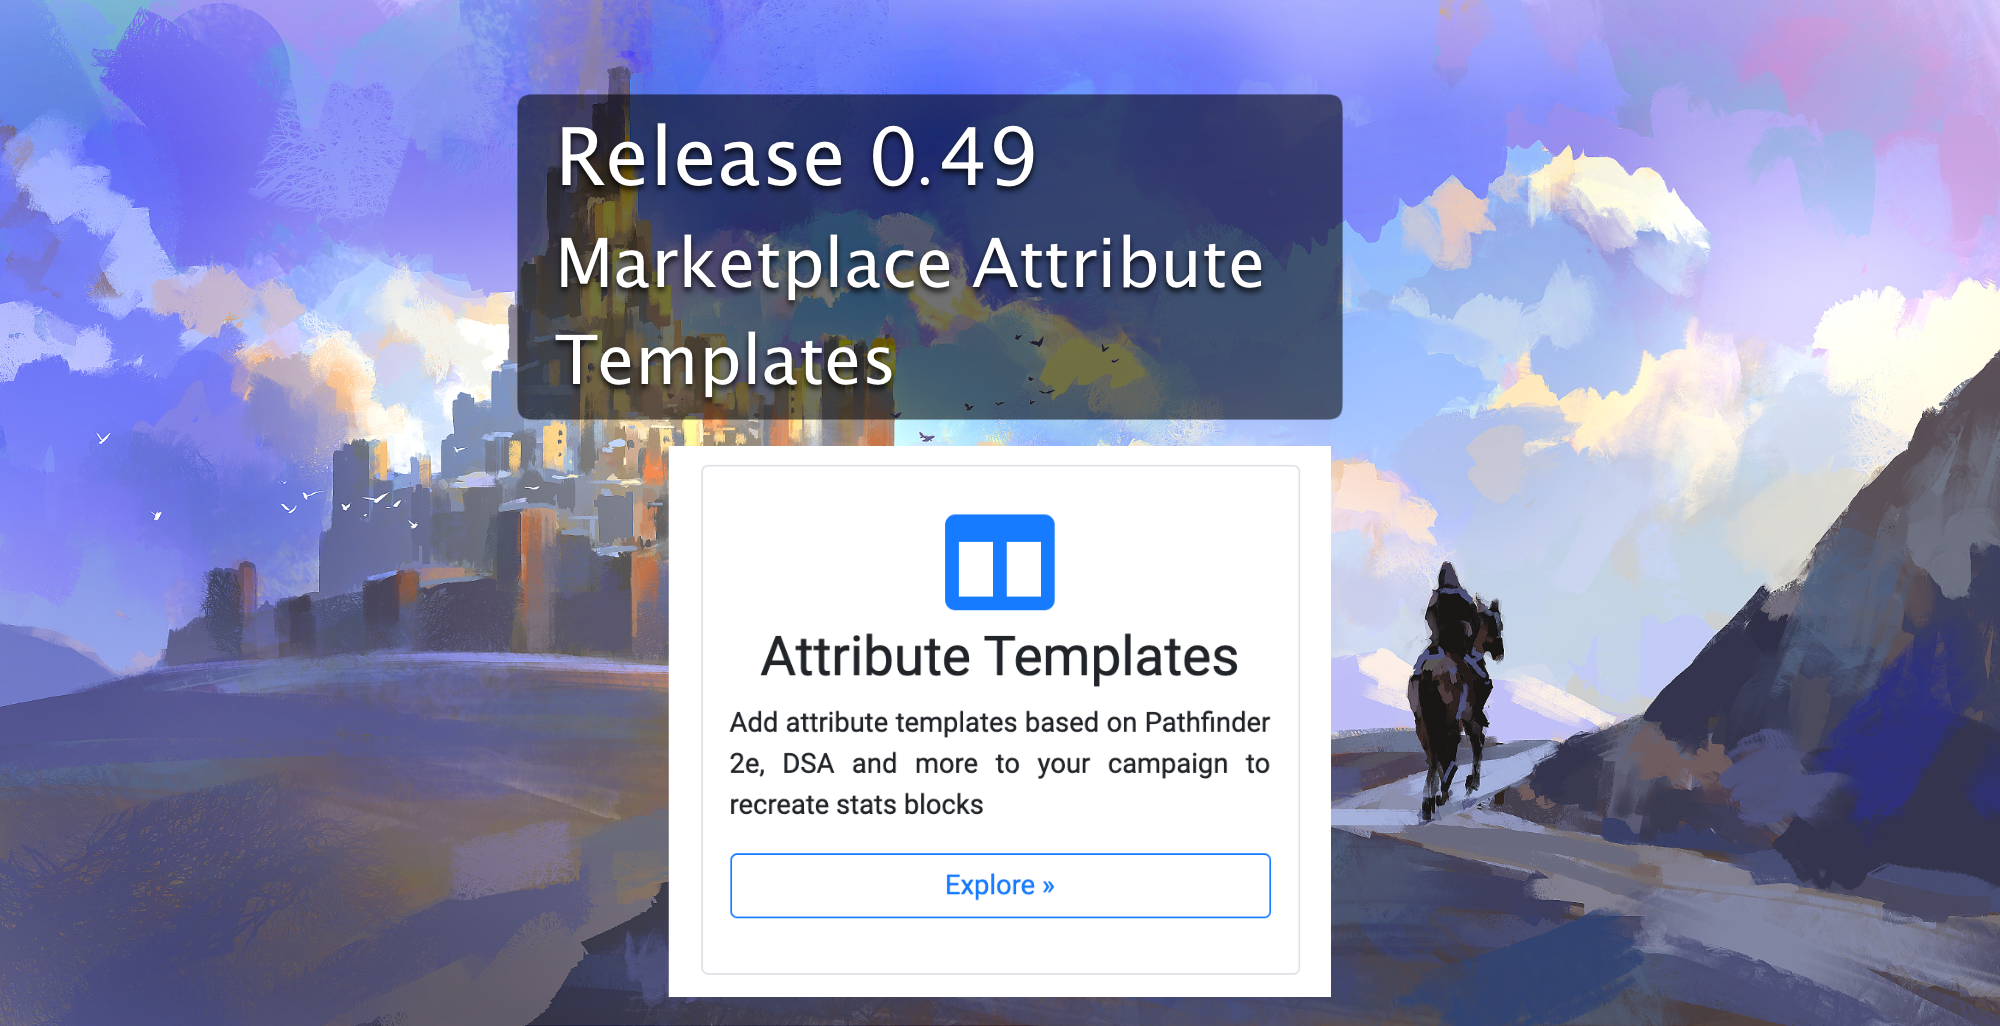 Release 0.49